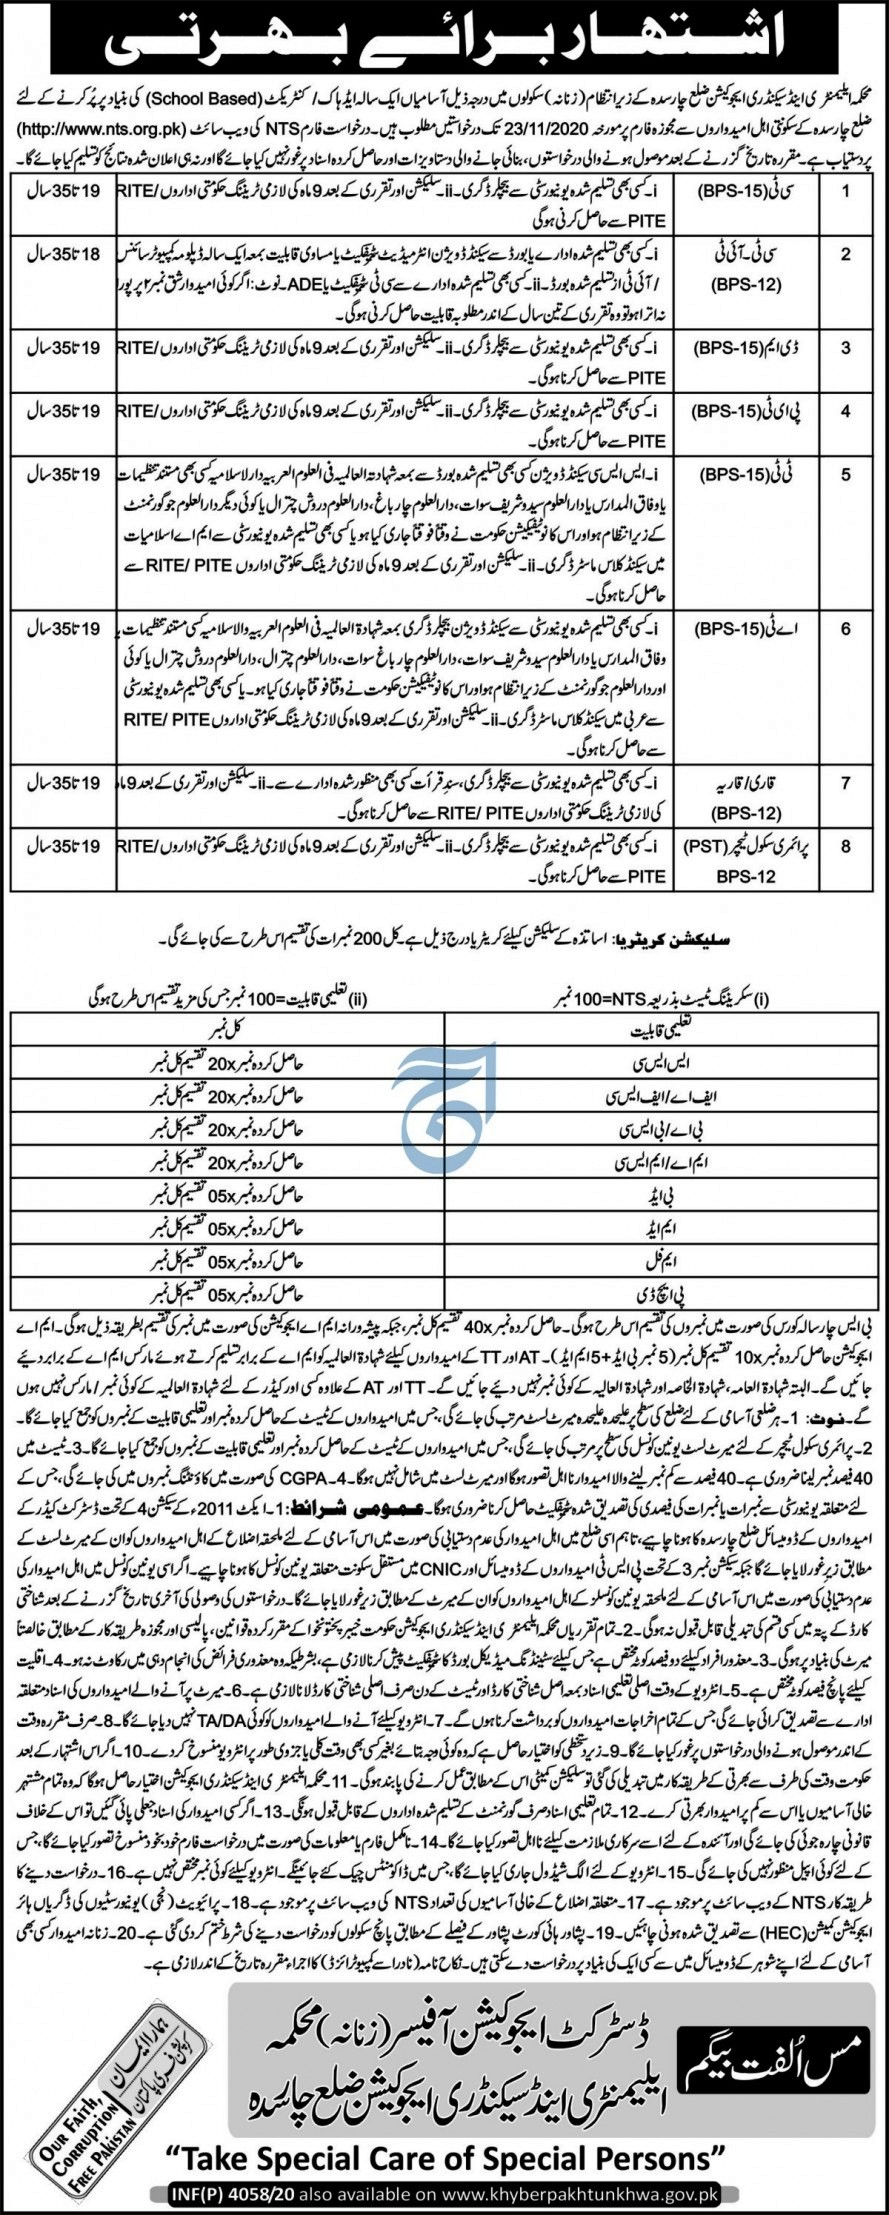 Elementary Secondary Education Male Mardan School Jobs NTS Roll No Slip